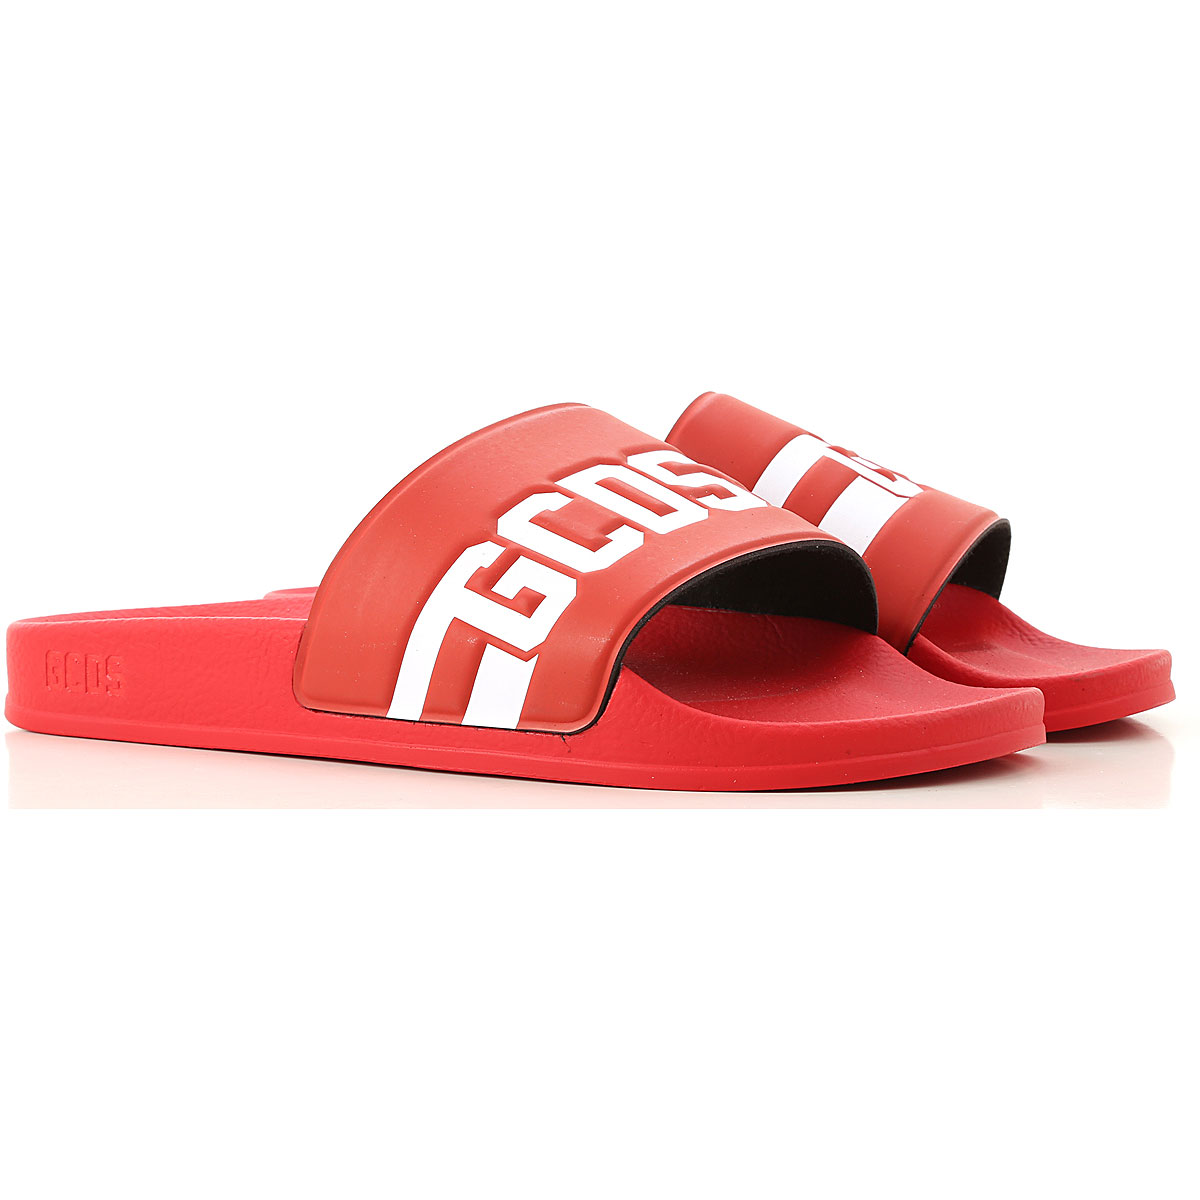 GCDS Sandals for Men Red USA - GOOFASH